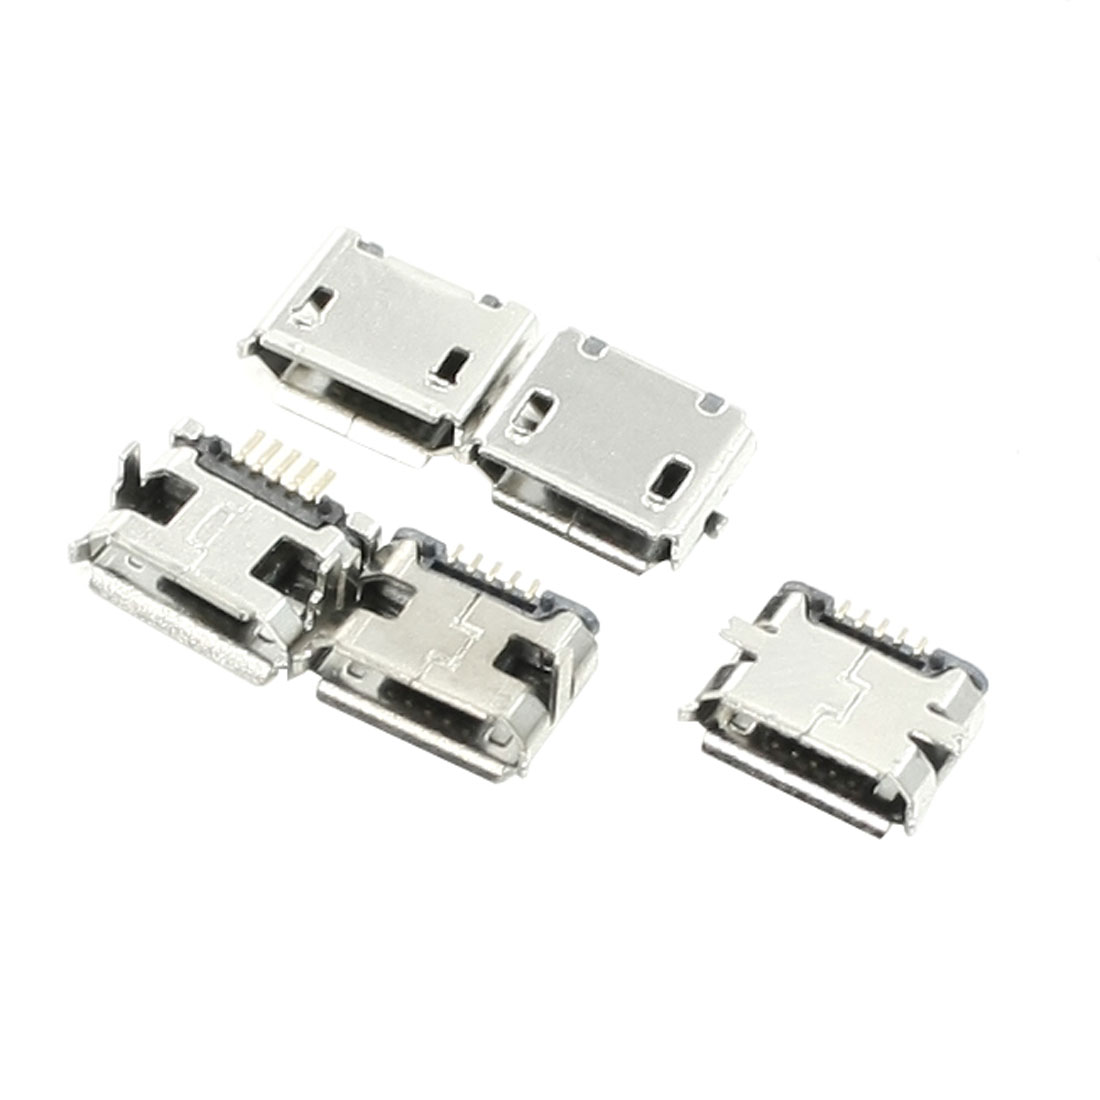 5 Pcs Micro B USB Female Connector 5 Pin SMT PCB Mount Port